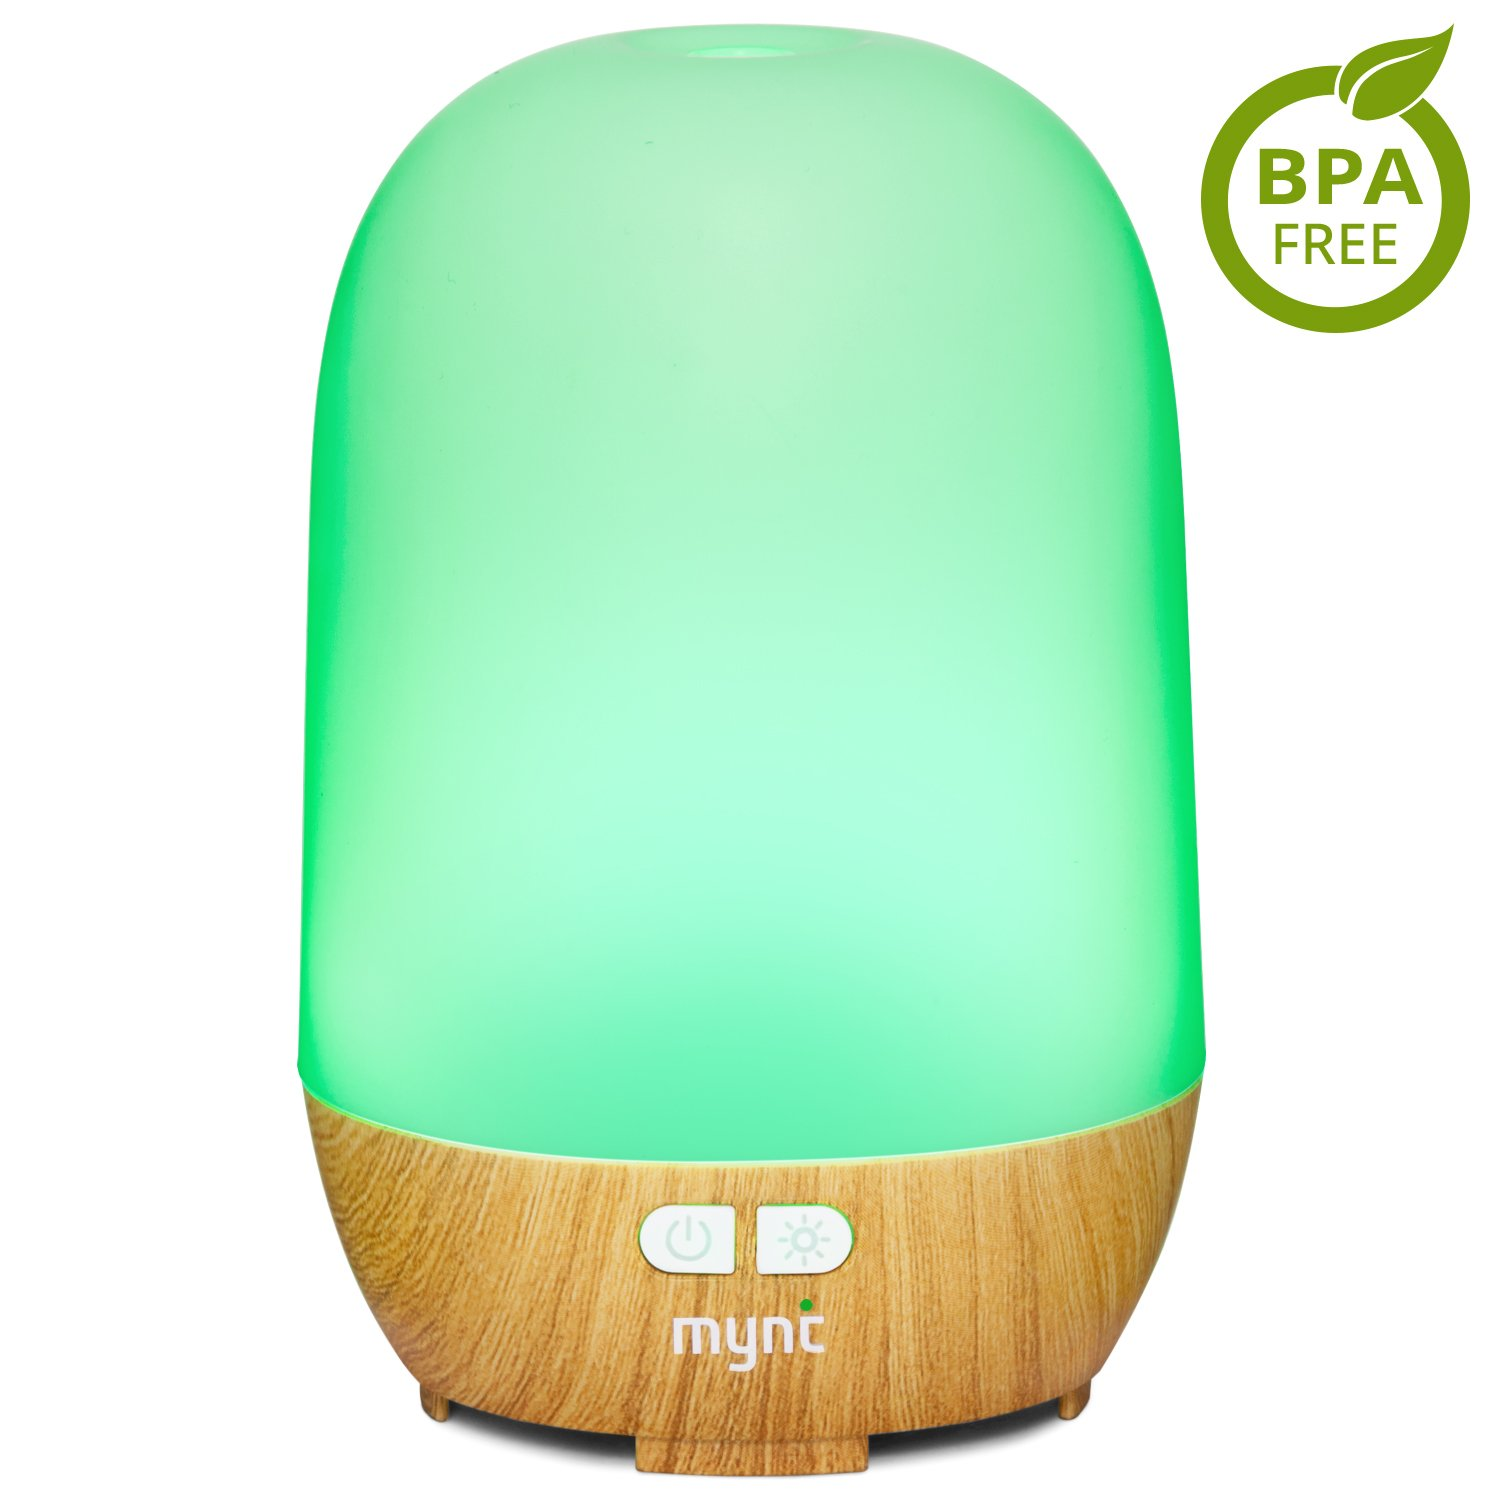 Mynt Woodgrain Essential Oil Diffuser (100ml) 10+ Hours of Humidifying Mist for Healthier Bedrooms, Living Rooms, Studios, Offices and more. 7 Colors Streamline Design, BPA-Free & FDA Approved OceanPal Technology